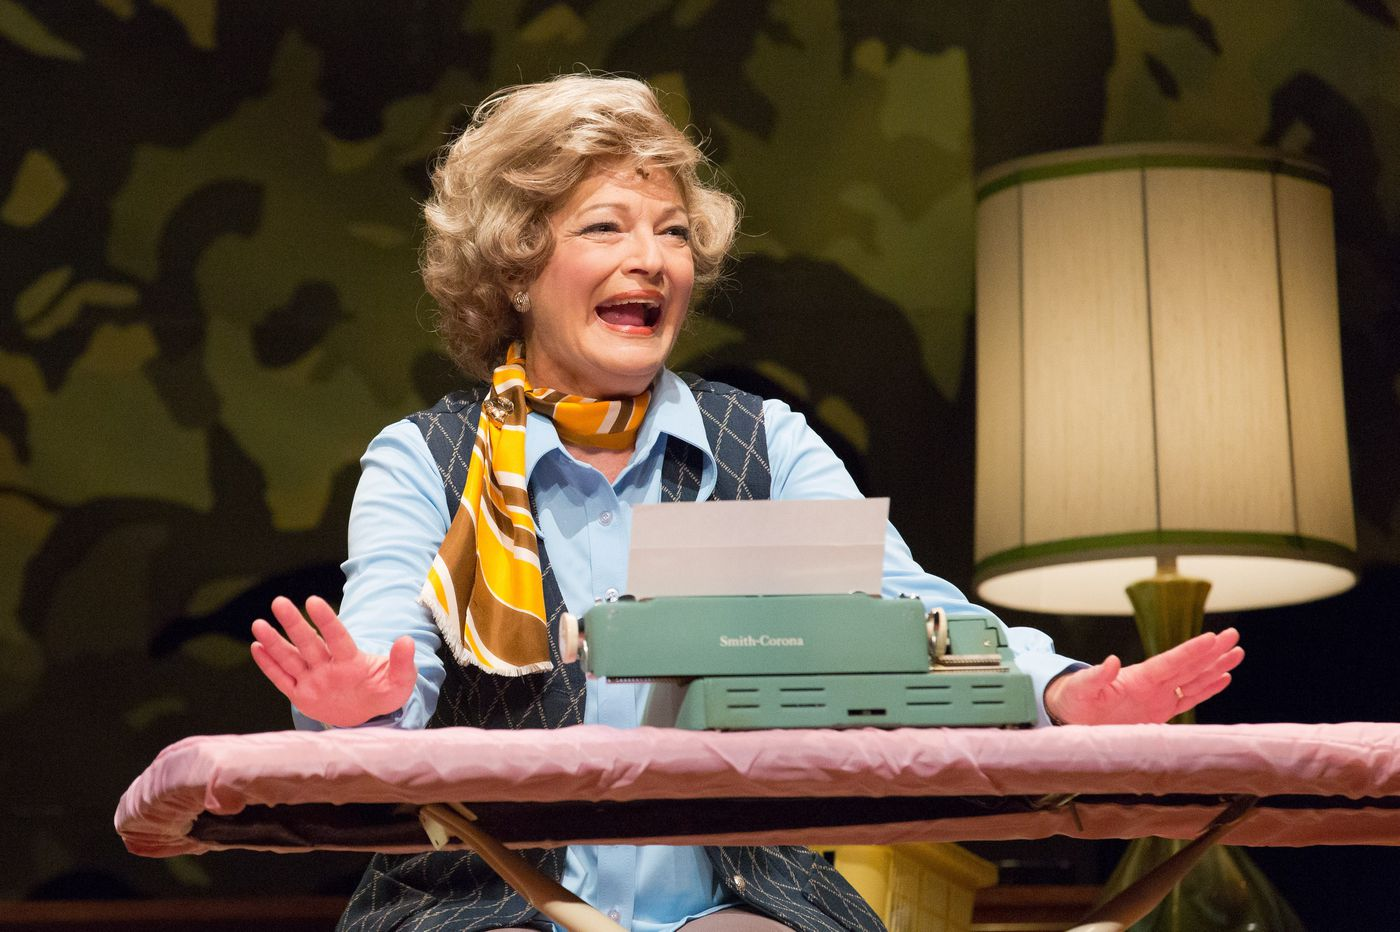 'Erma Bombeck: At Wit's End' at Bristol Riverside: A woman who wielded the power of laughter